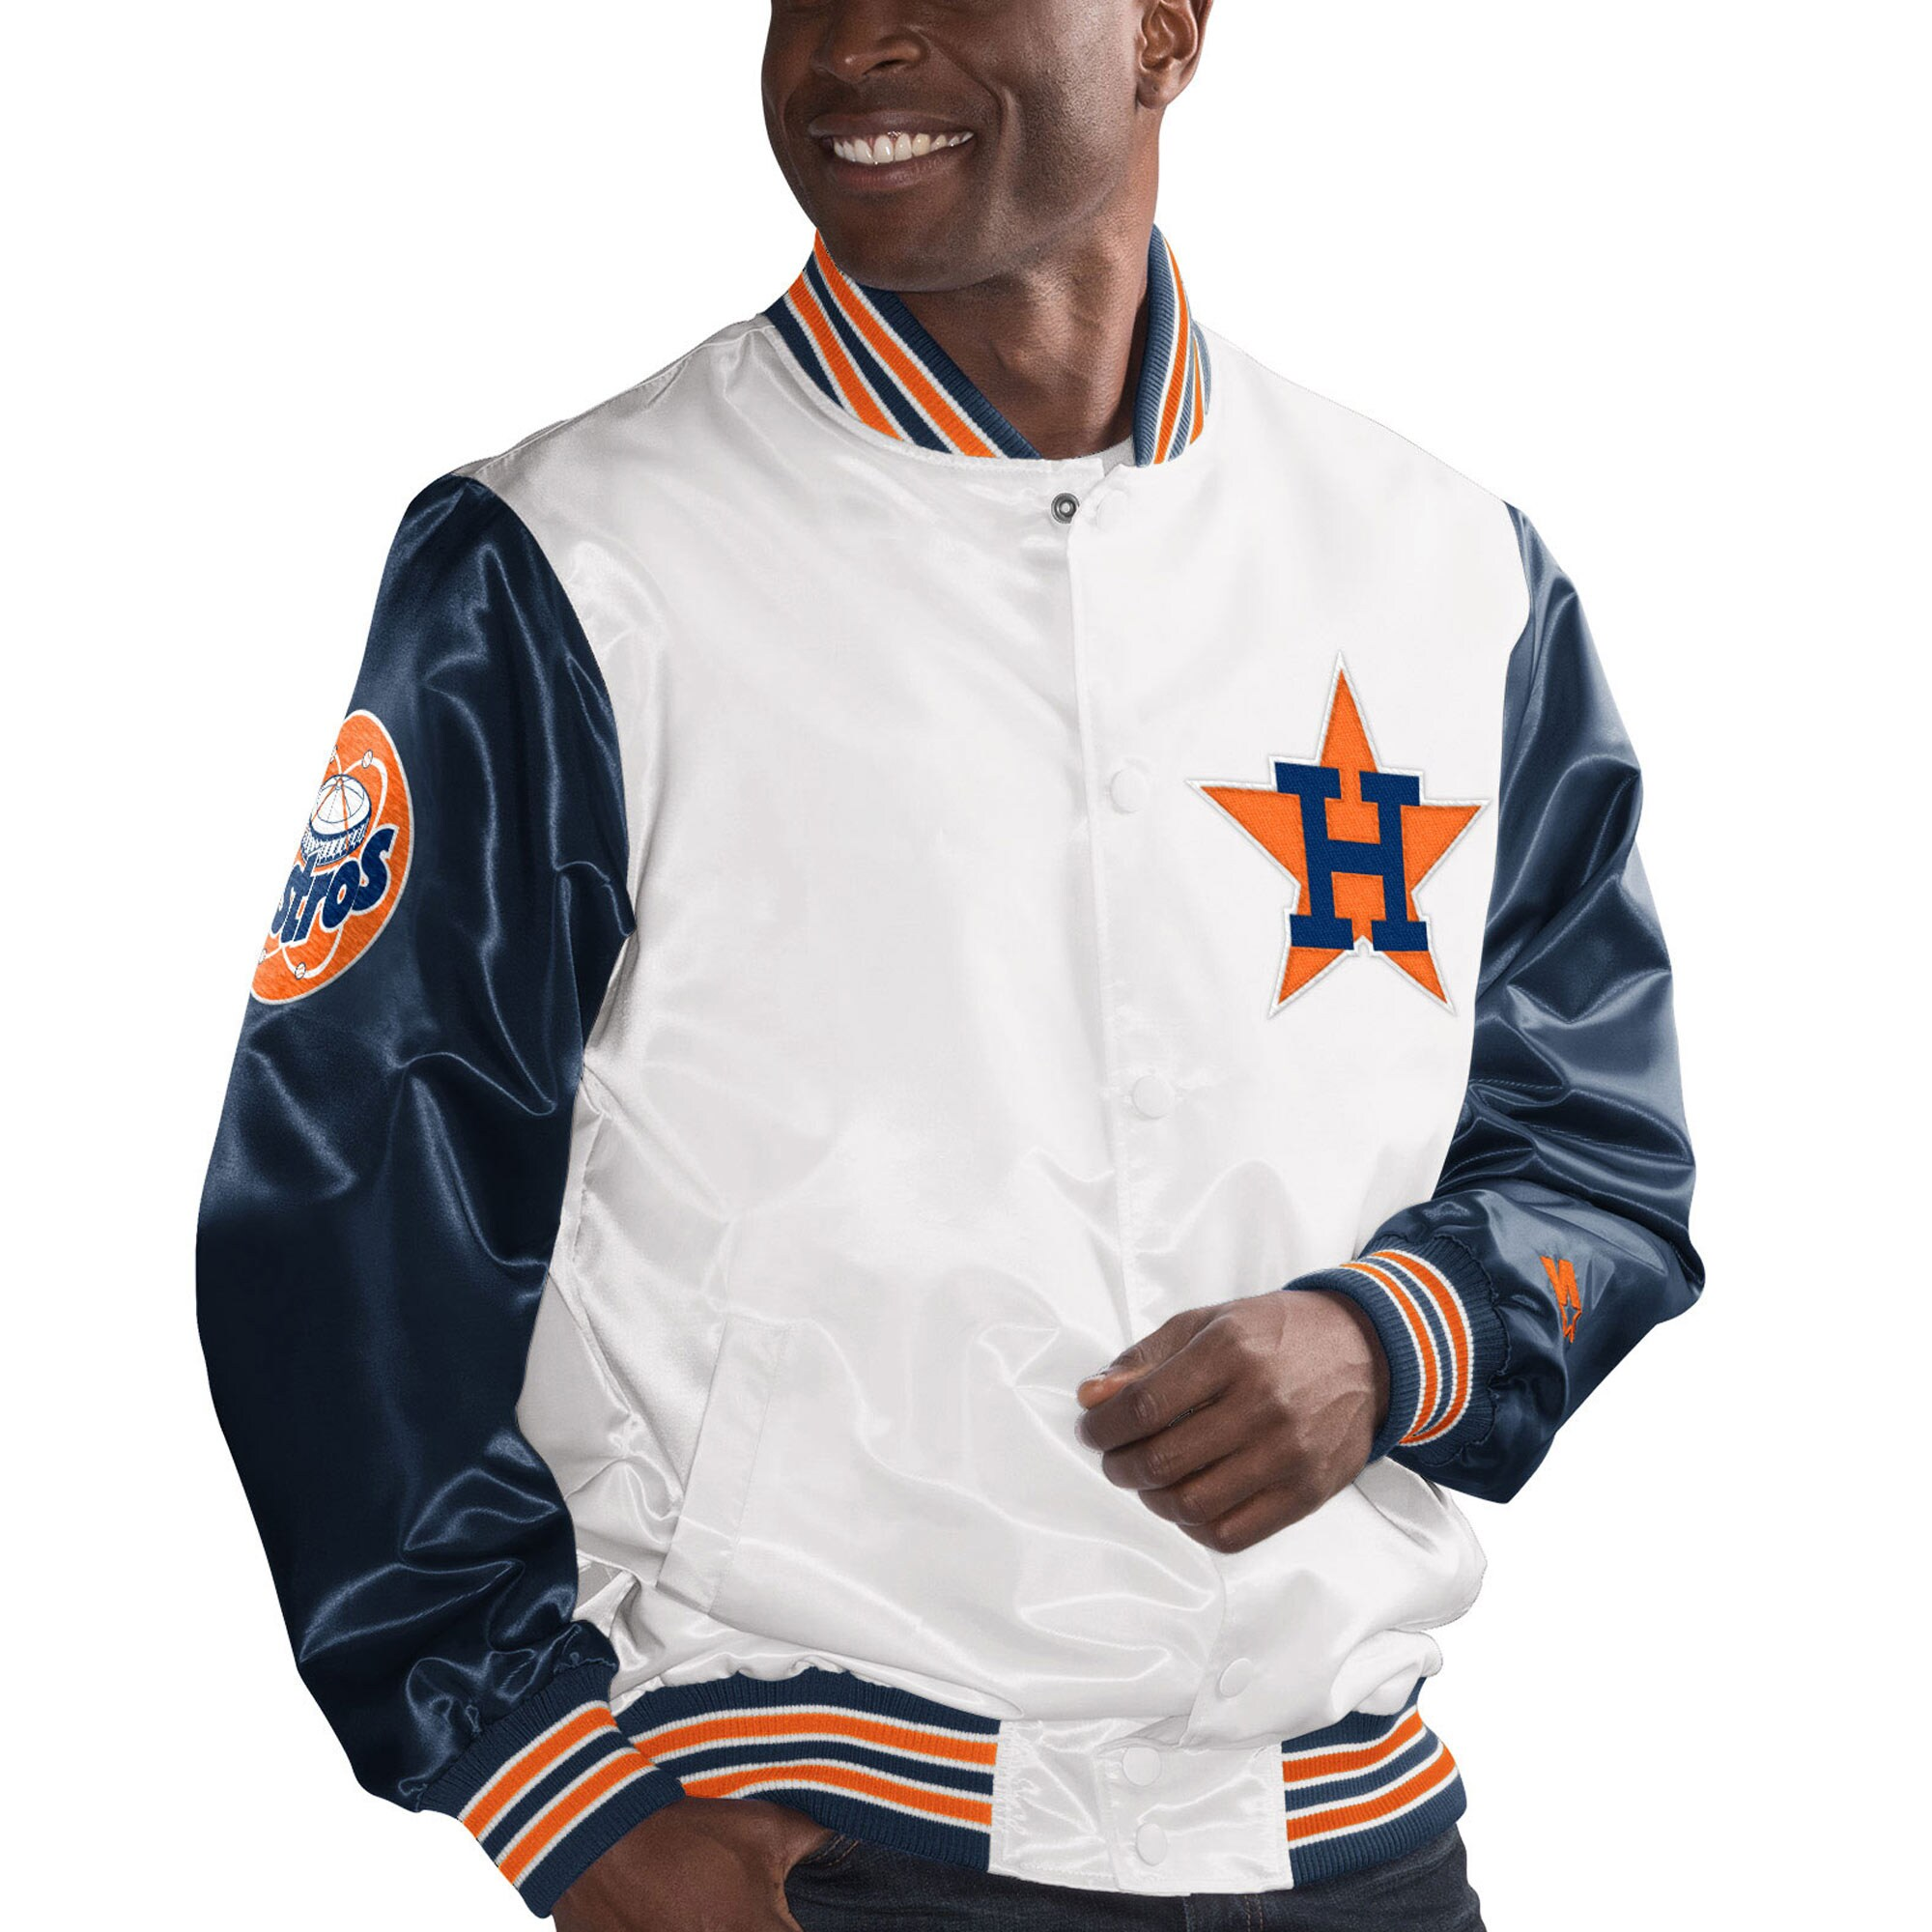 Houston Astros Starter The Legend Jacket - White